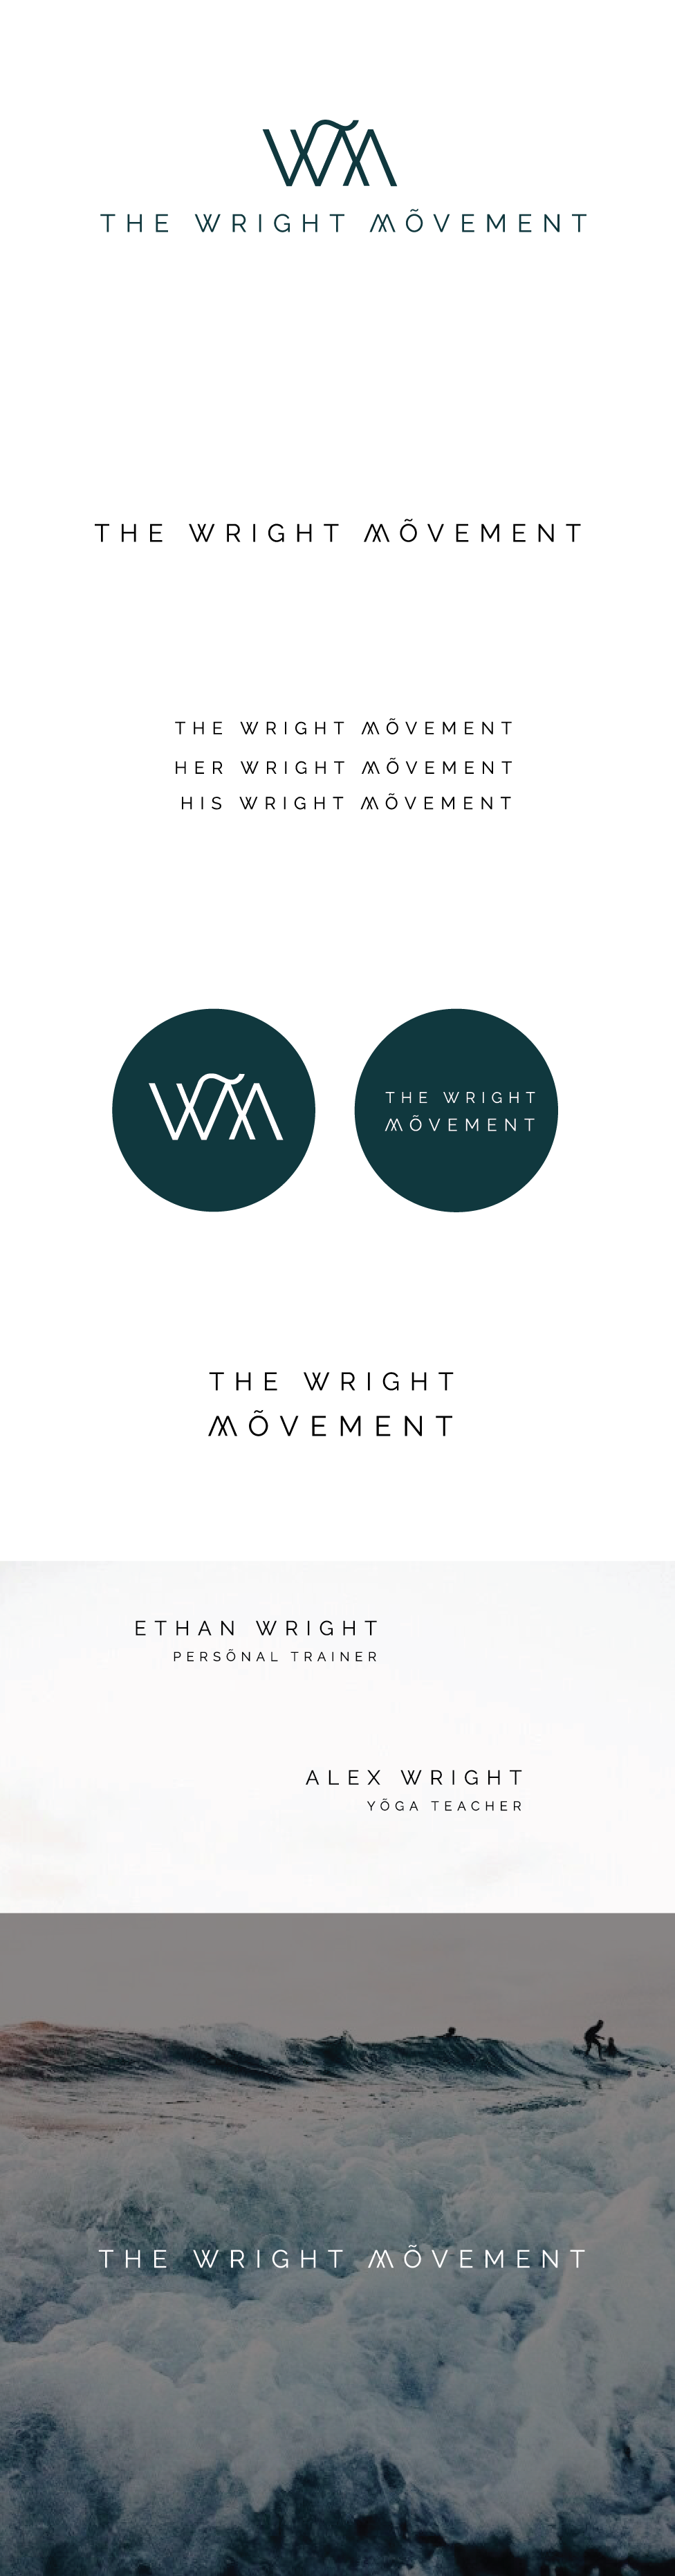 Brand Development - The Wright Movement